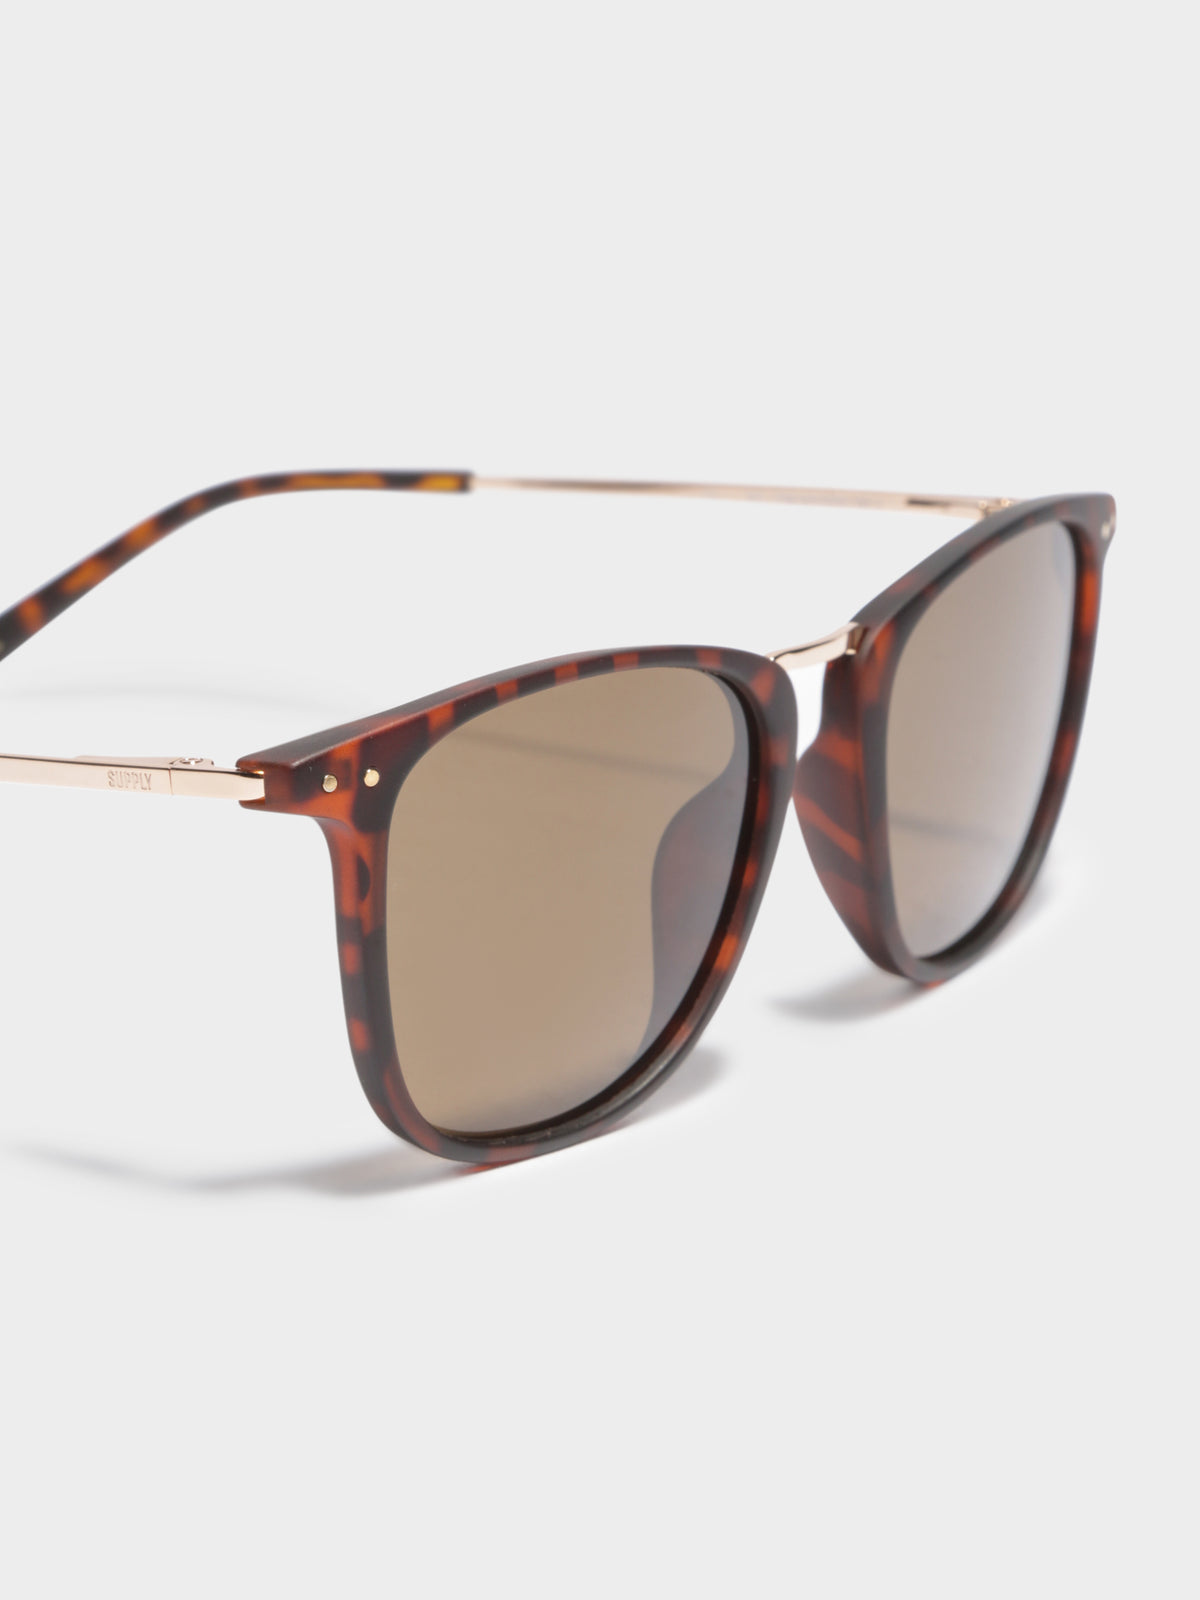 NYC Polarized Sunglasses in Tortoise Shell Brown